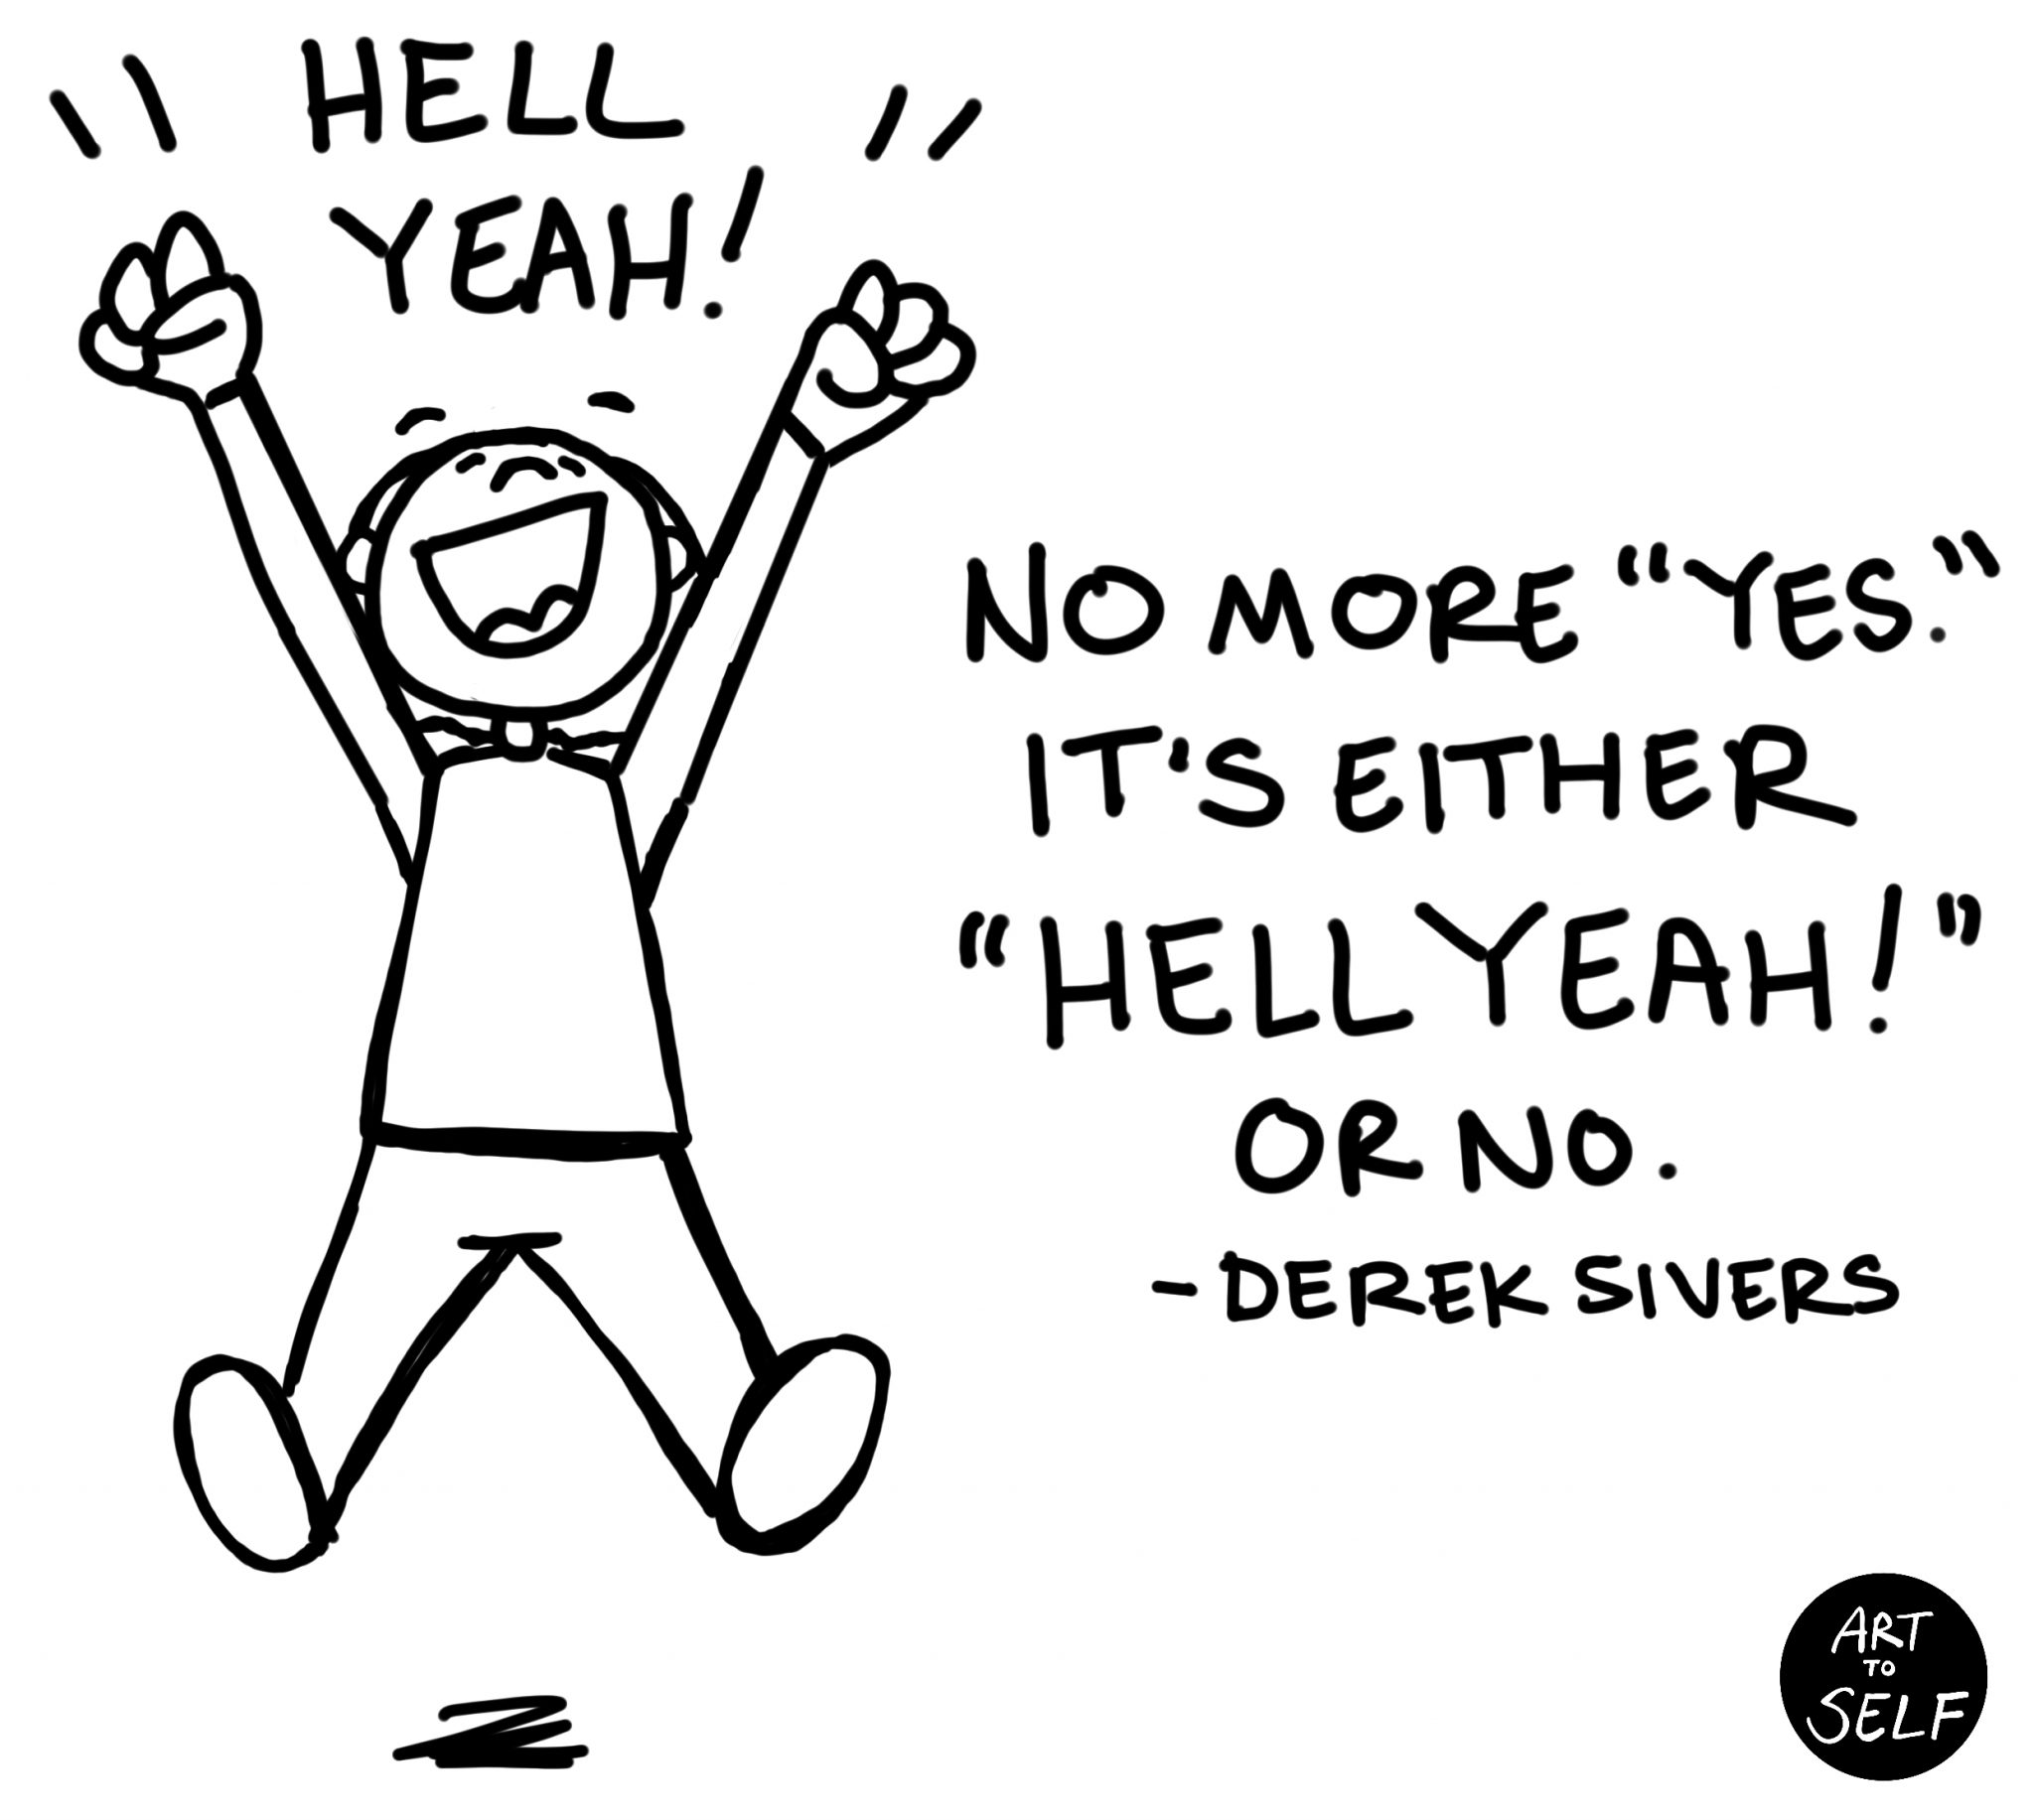 Hell-yeah-or-no-derek-sivers